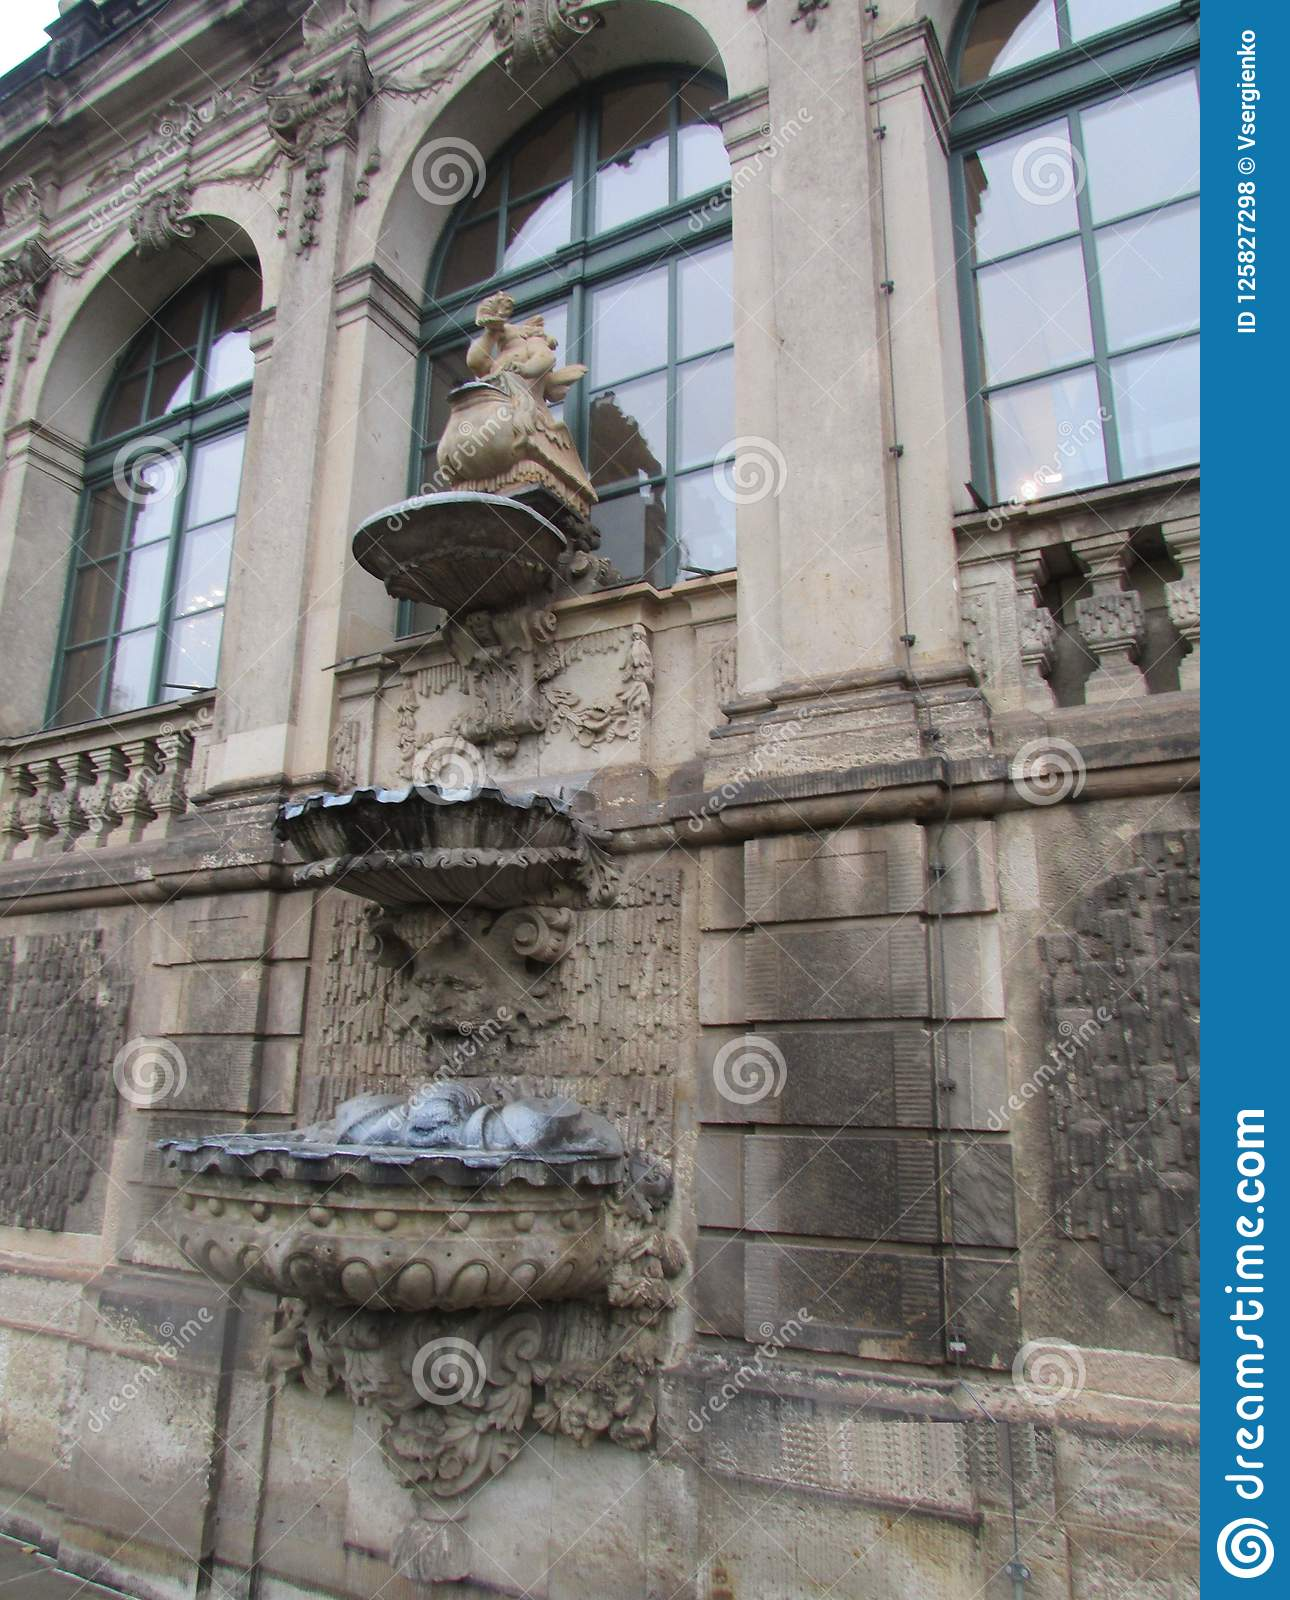 Sculptural decoration on the window in the royal castle Zwinger, Dresden, Germany.